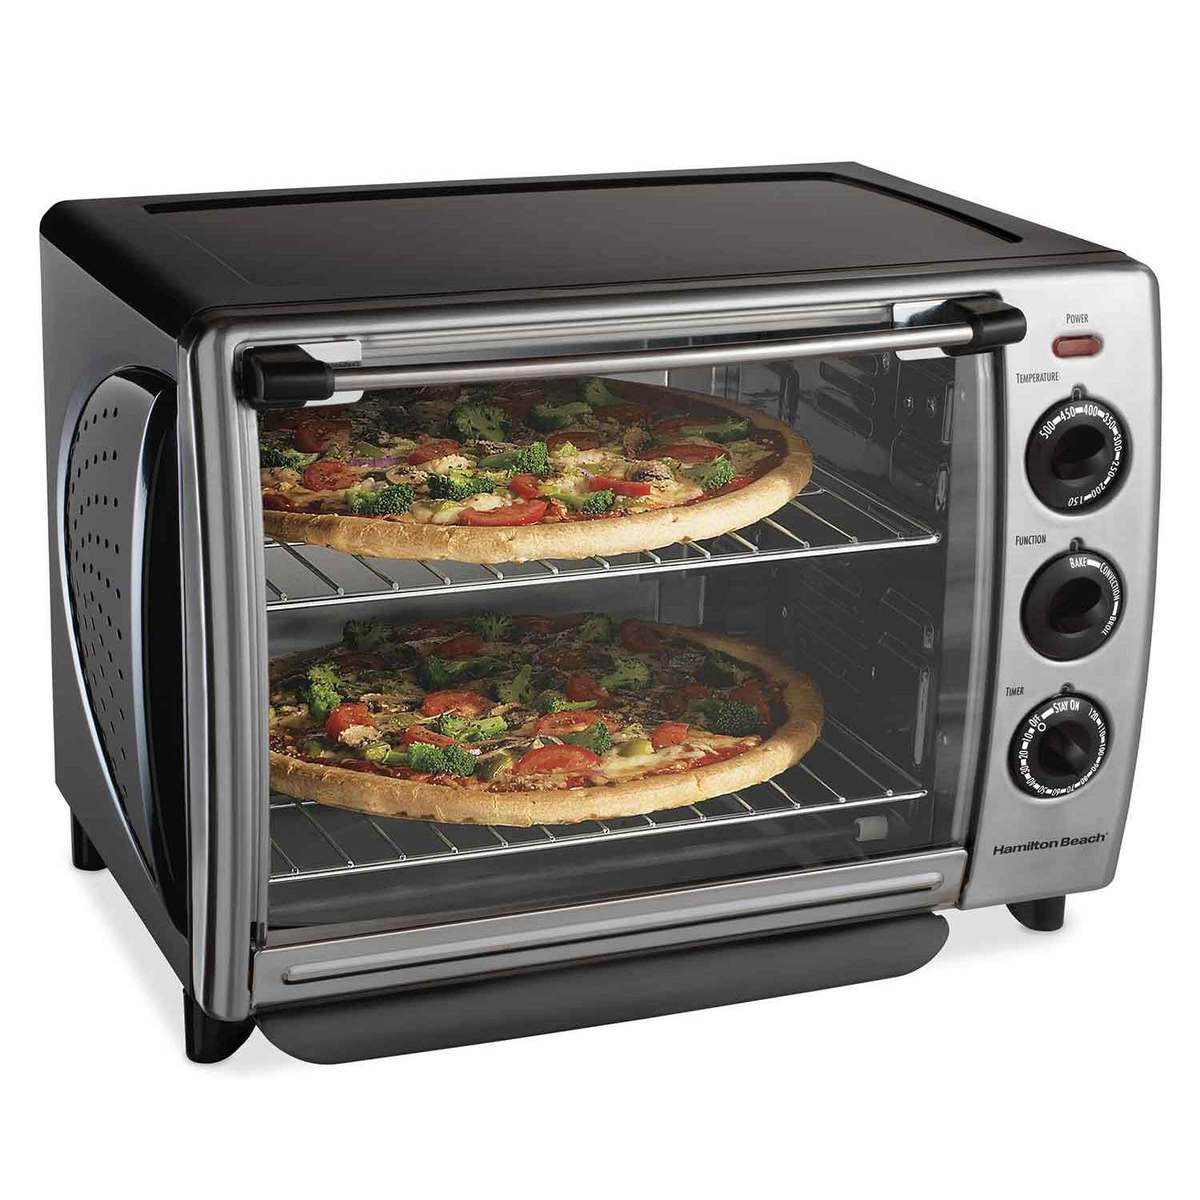 Countertop Oven with Convection & Rotisserie (31199R)